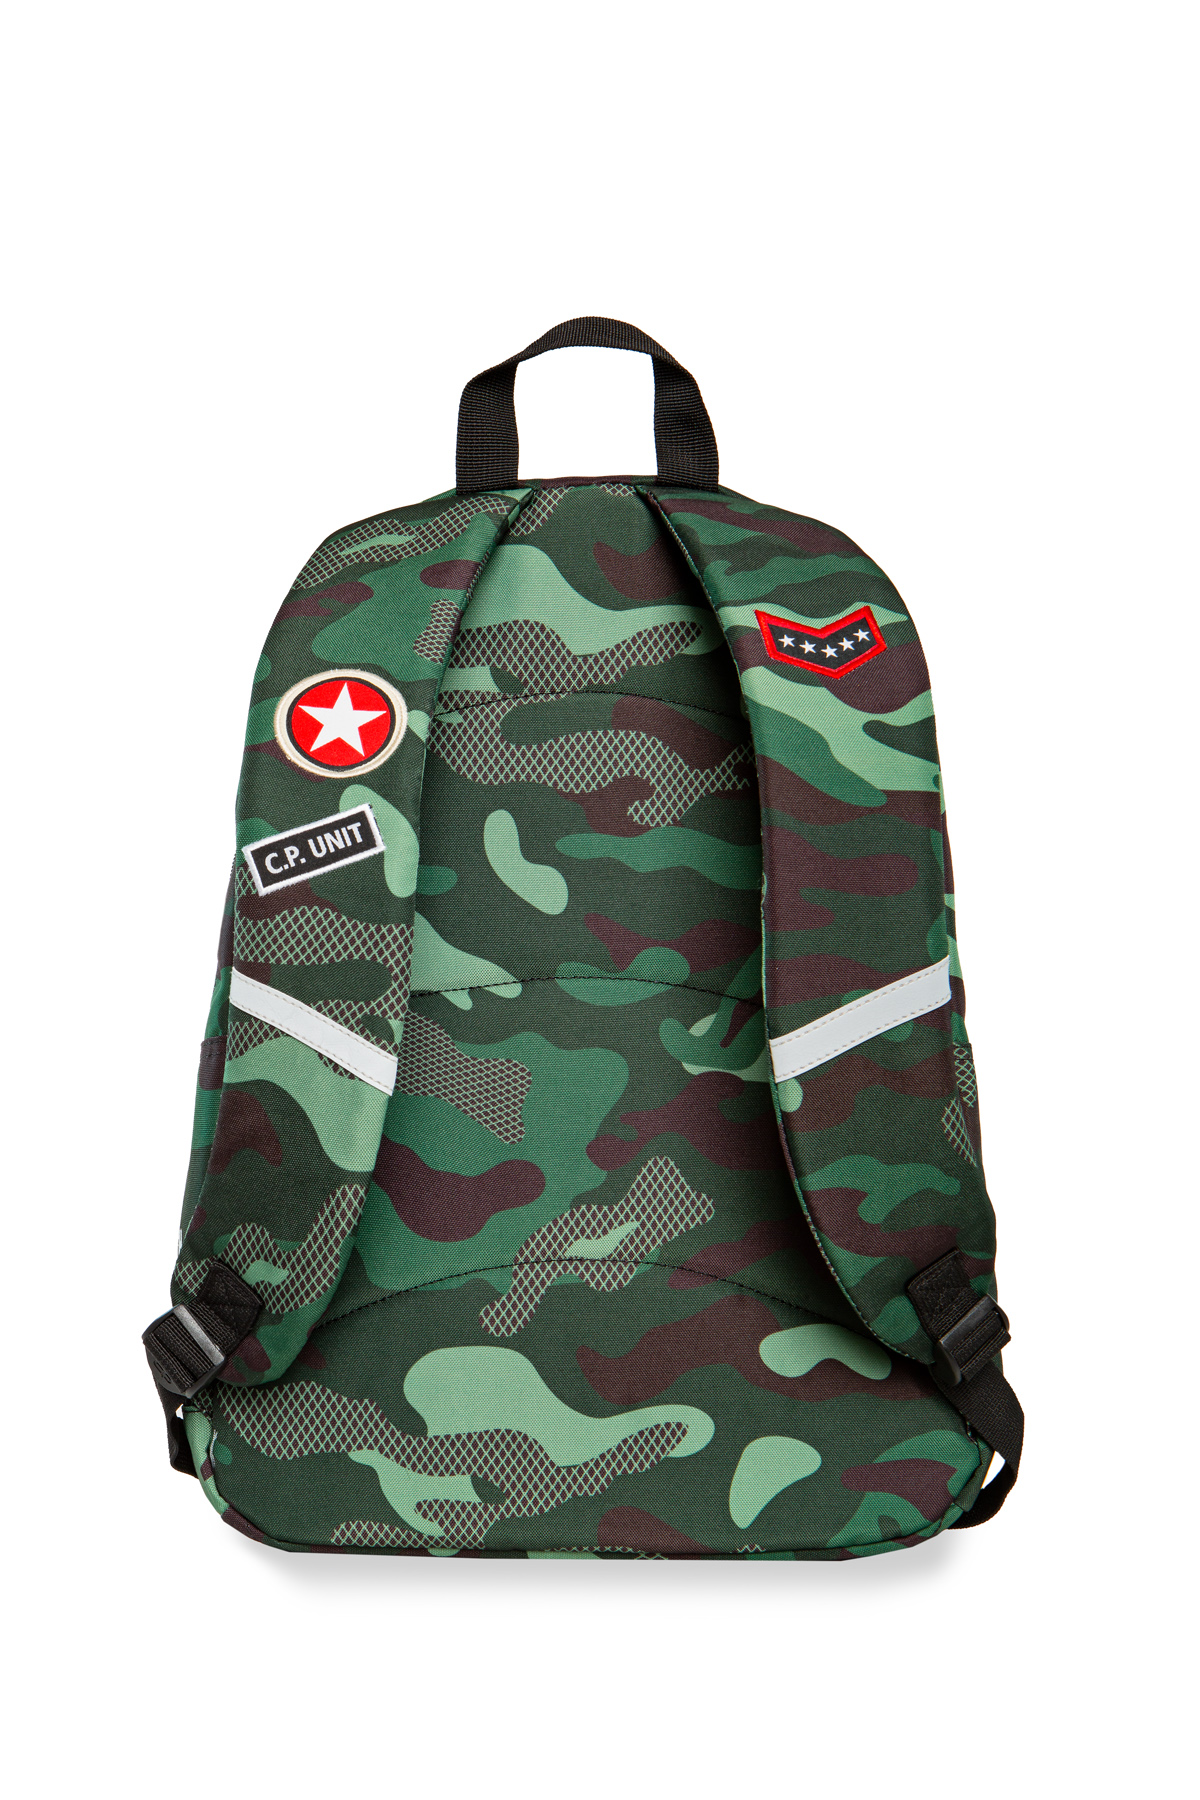 Coolpack - cross - youth backpack - camo green